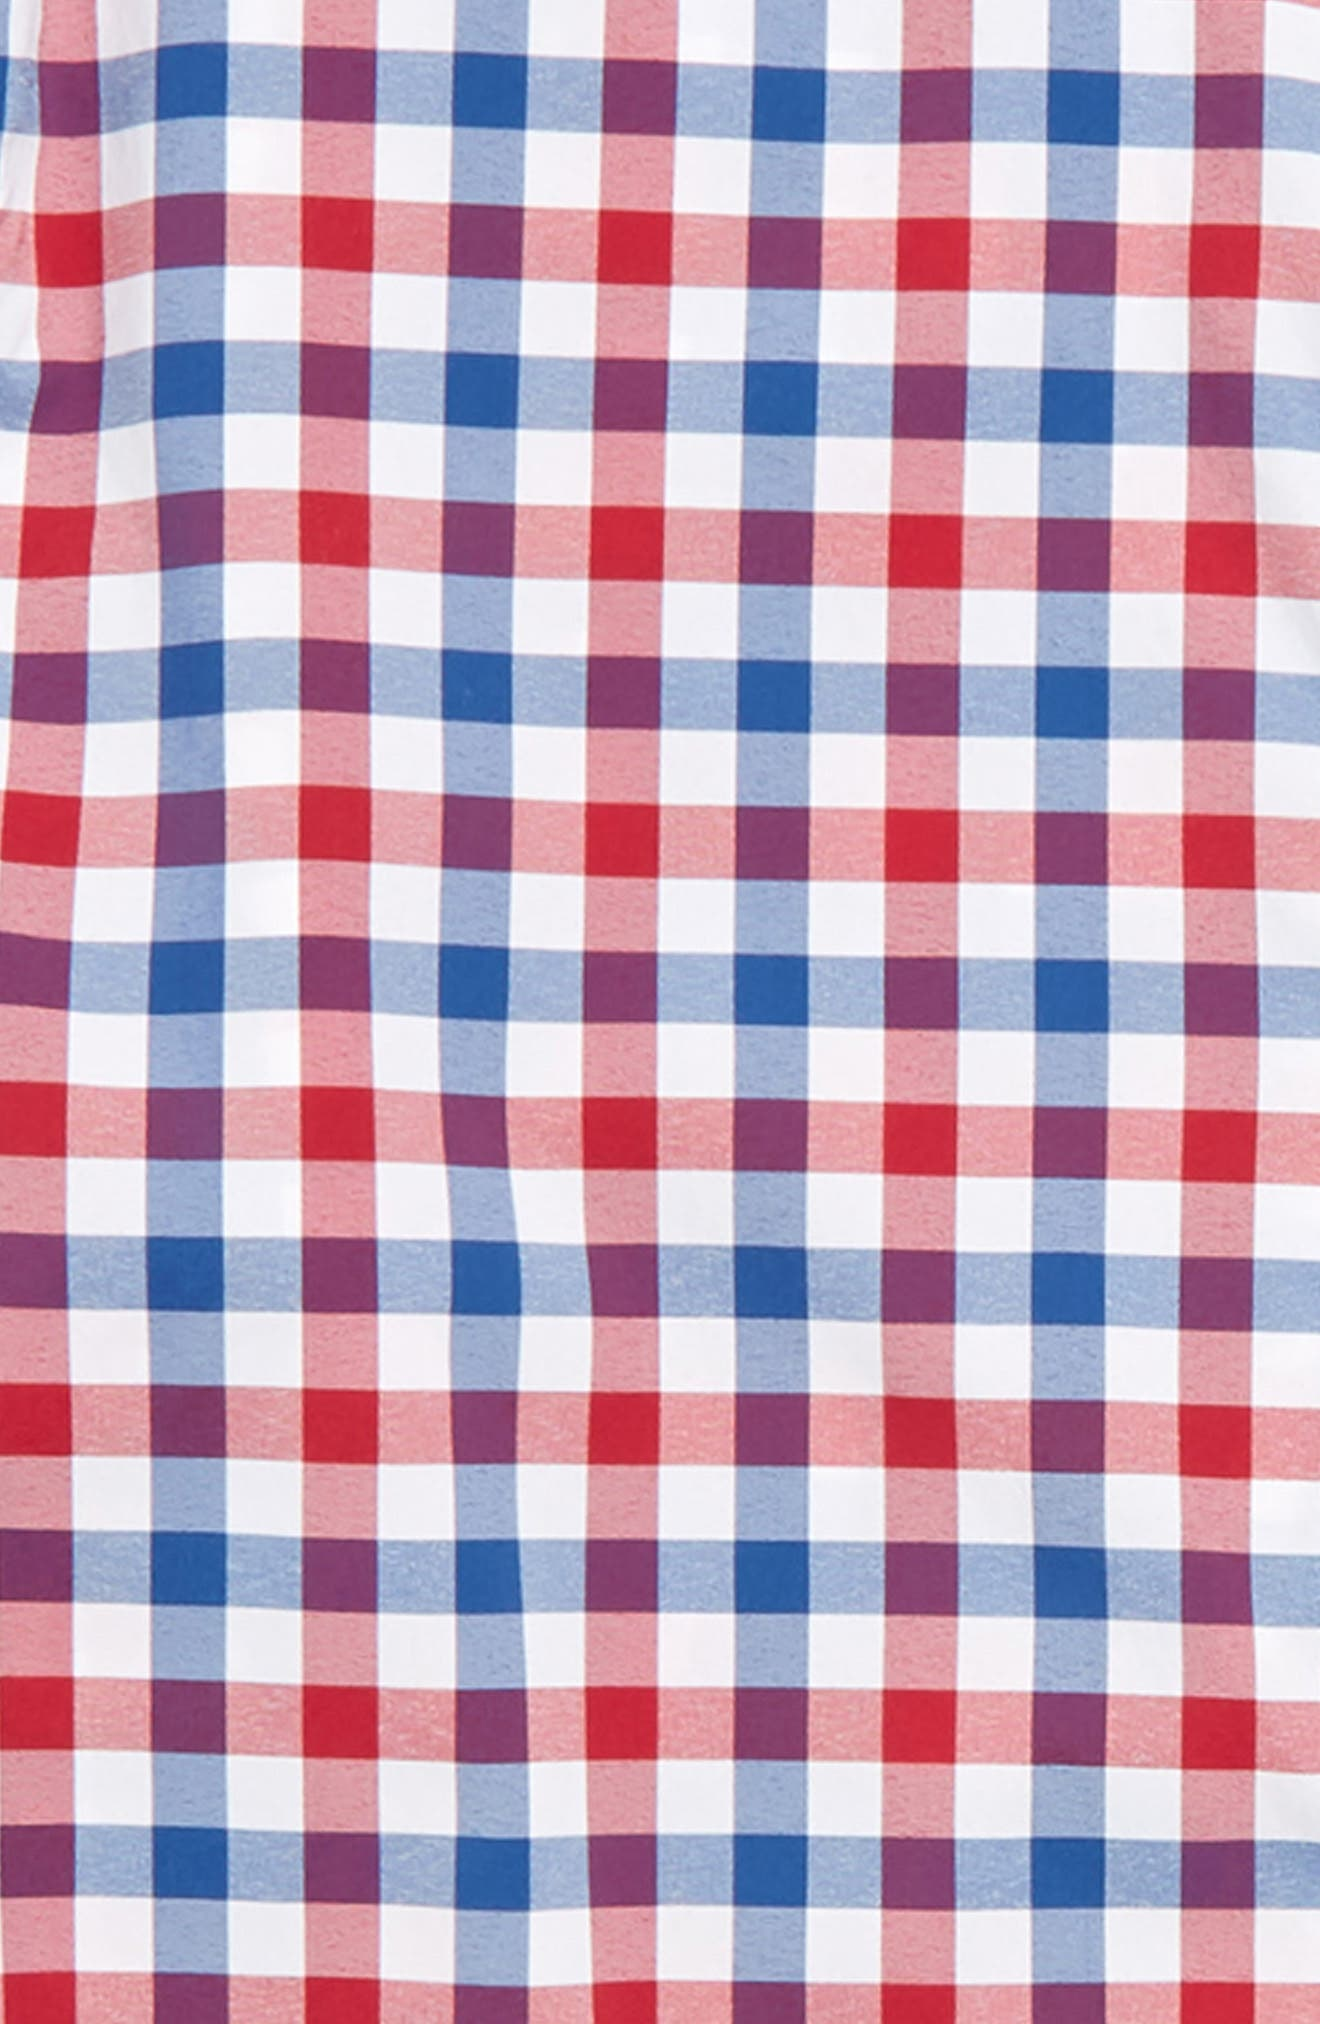 Gull Island Gingham Whale Shirt,                             Alternate thumbnail 2, color,                             401